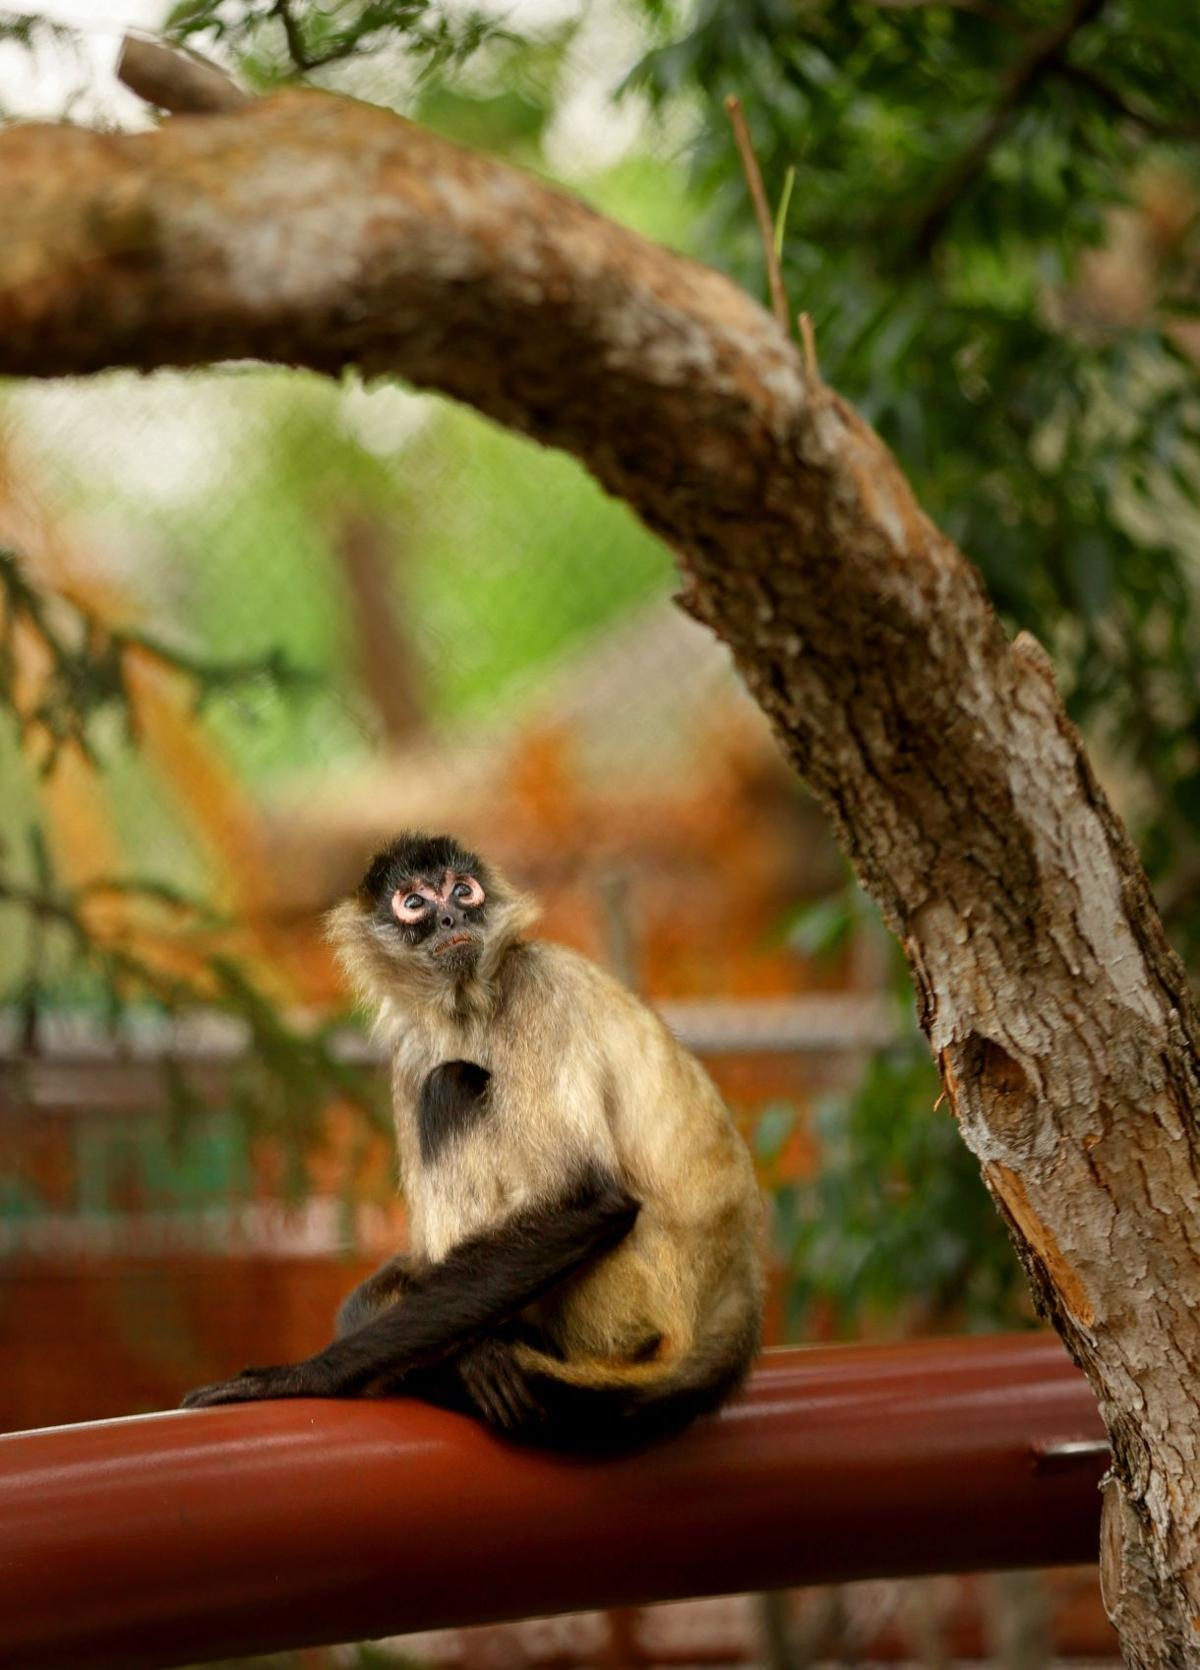 New outdoor primate area to open to public